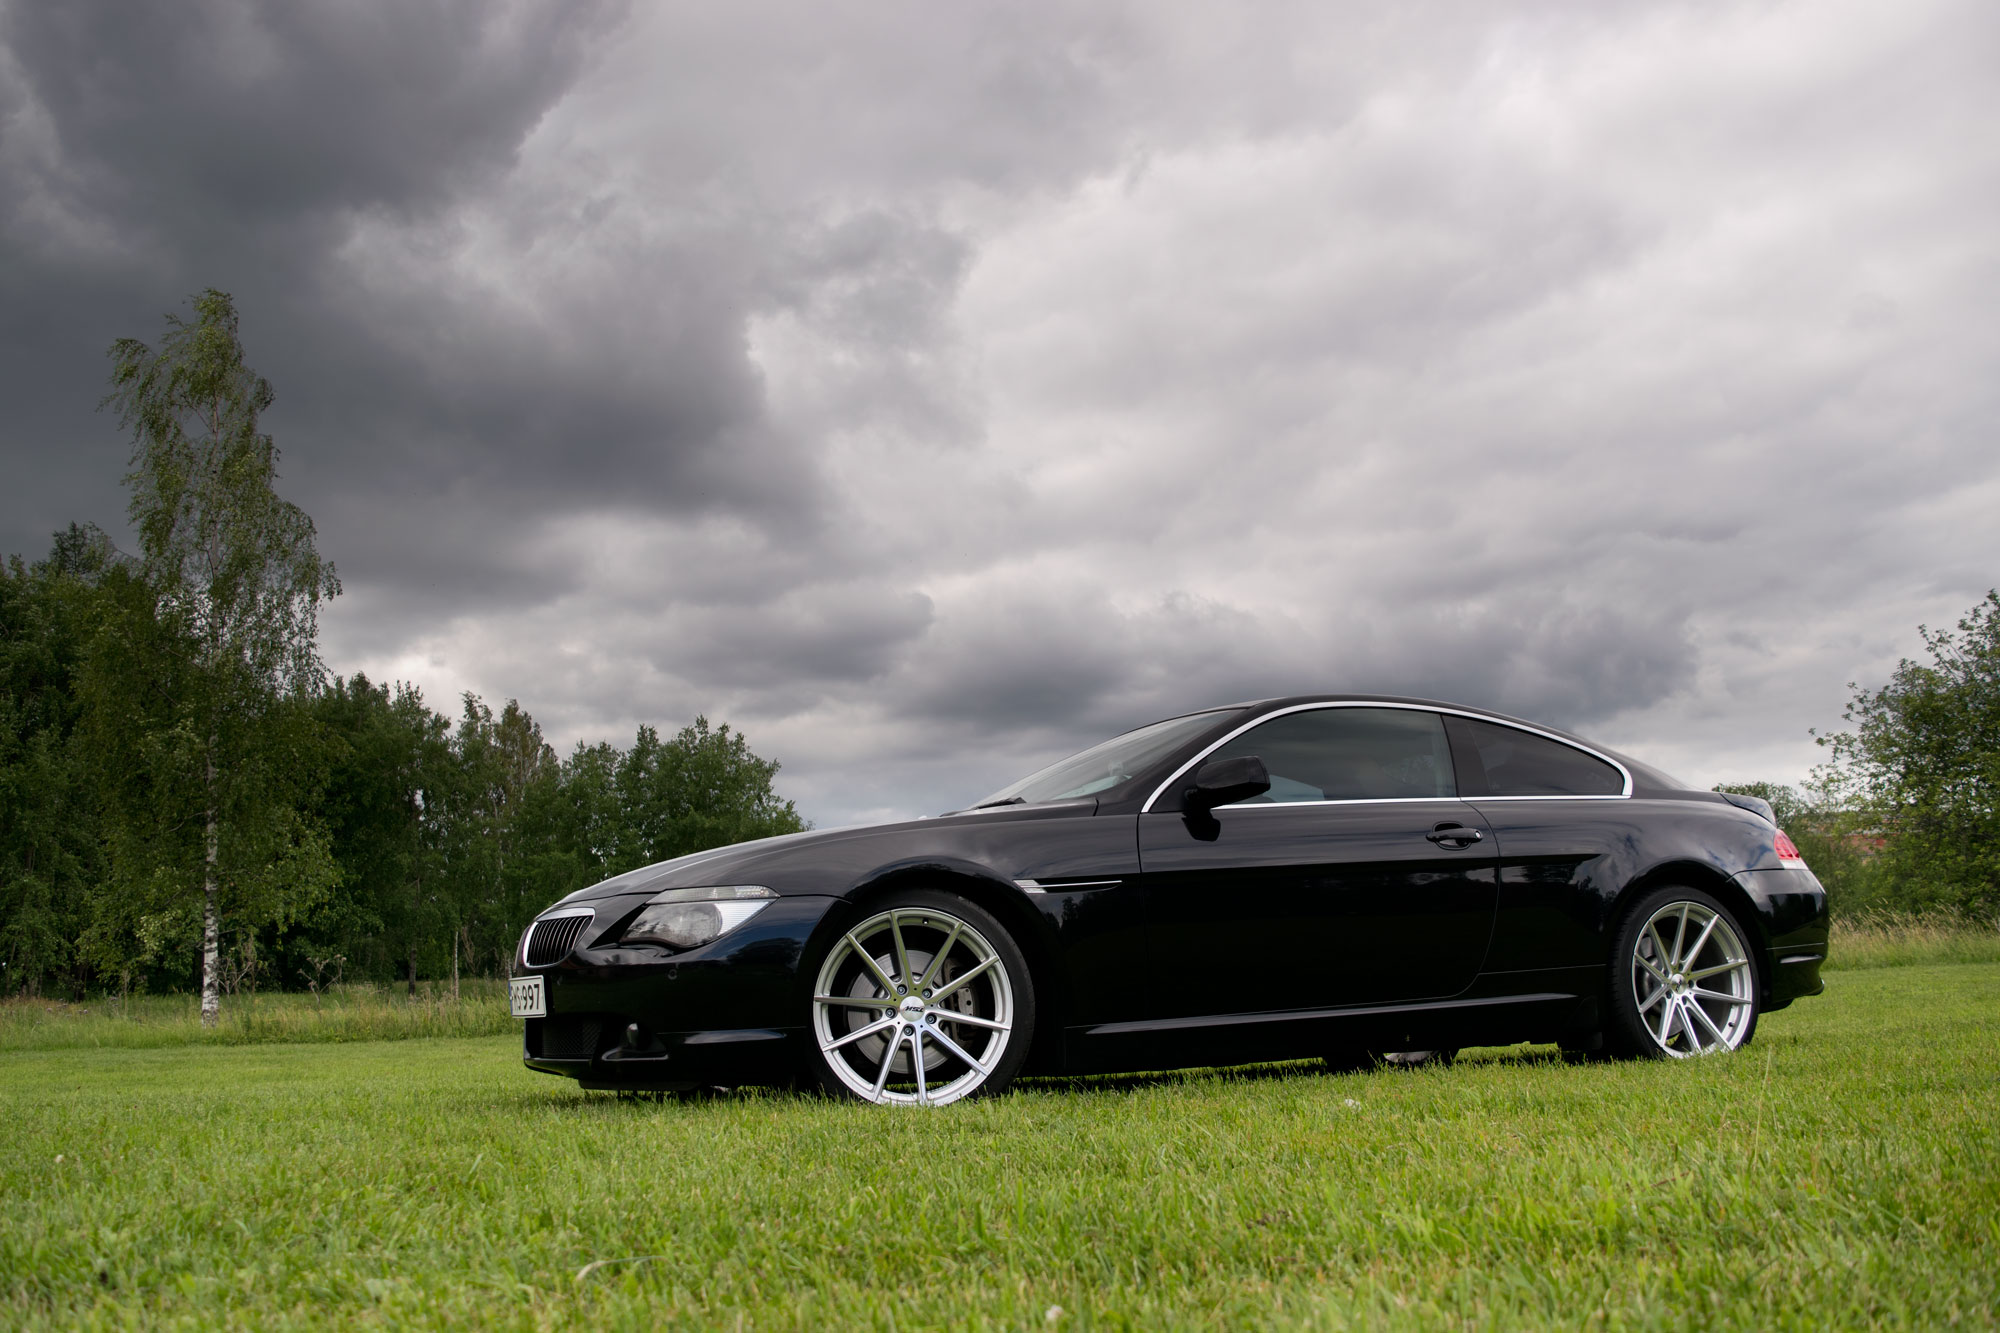 BMW 6-series coupe E63 - TSW Bathurst Wheels - Screw Them All - Blog